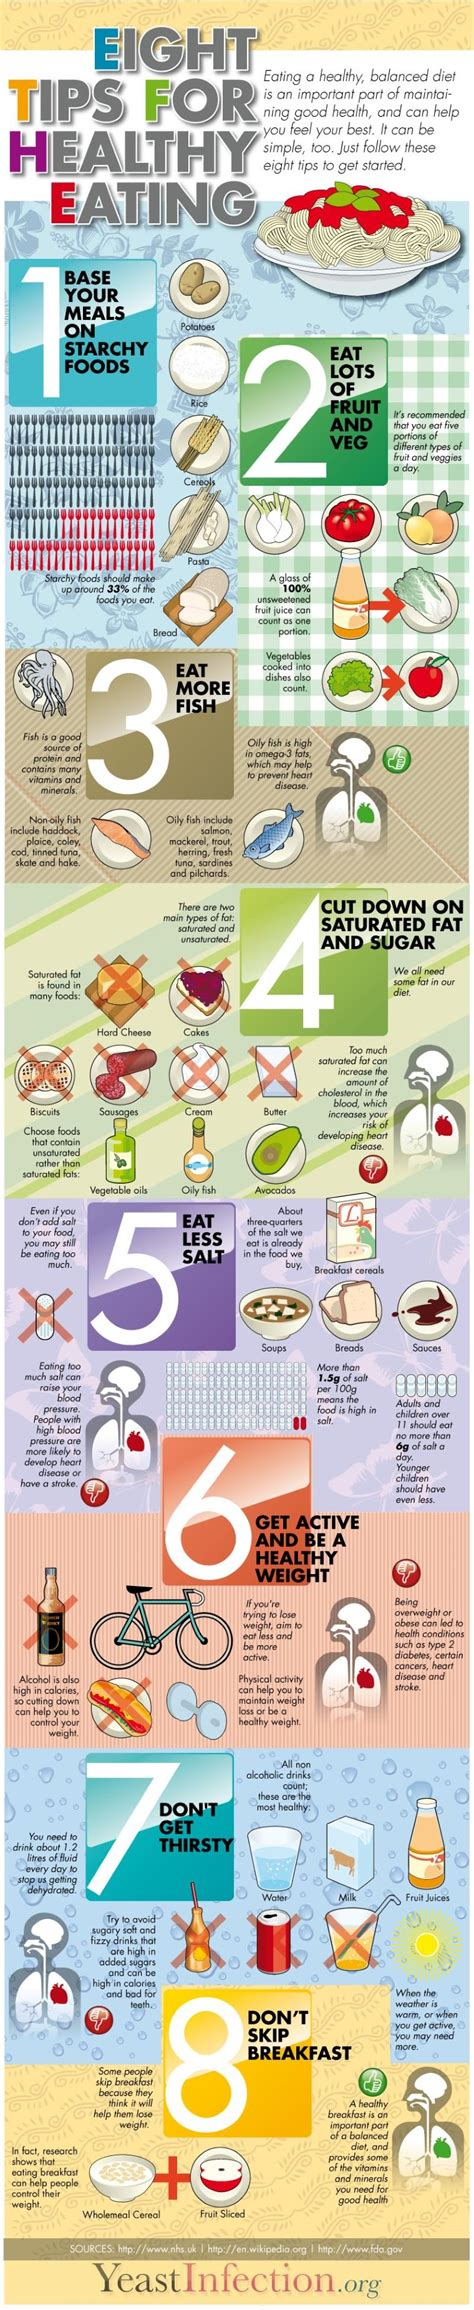 Infographic 24 Daily Habits That Will Make You Smarter Designtaxi Follow 8 Useful Tips For Healthy Infographic Womensfblog